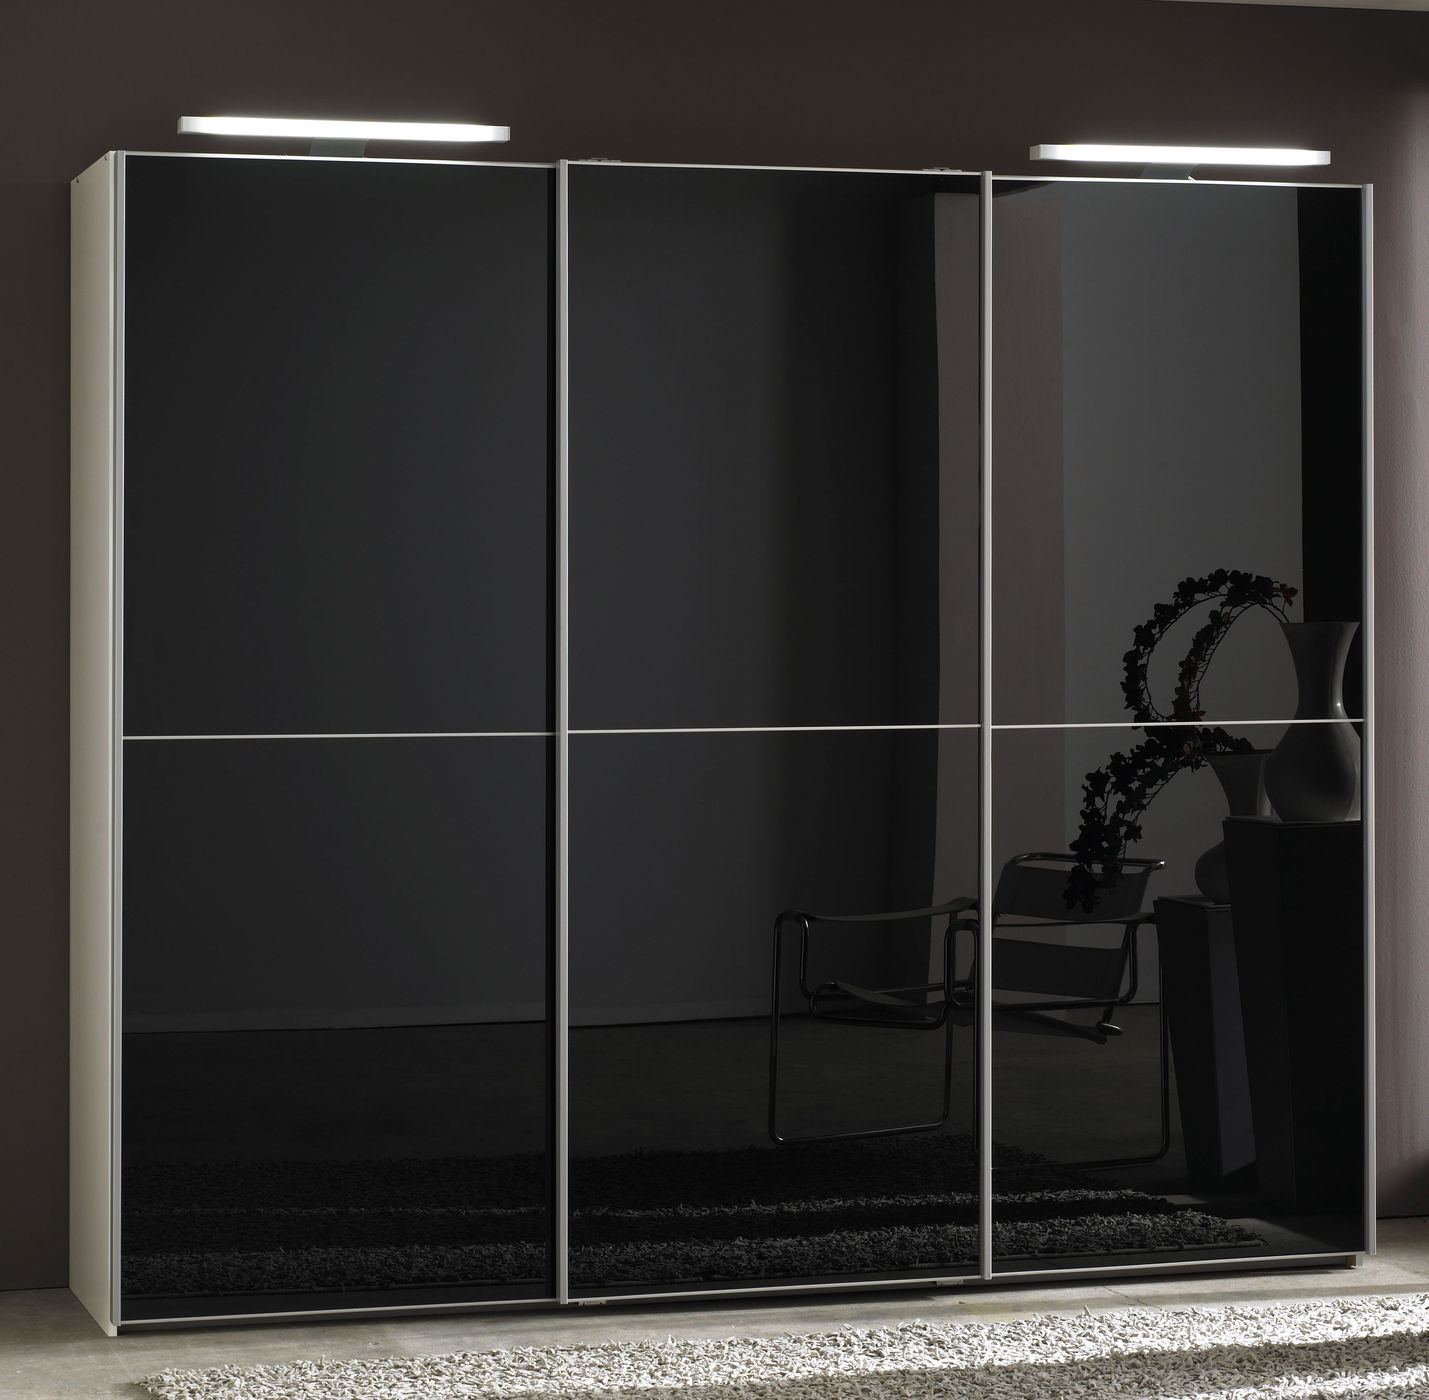 schrank mit glasfront. Black Bedroom Furniture Sets. Home Design Ideas